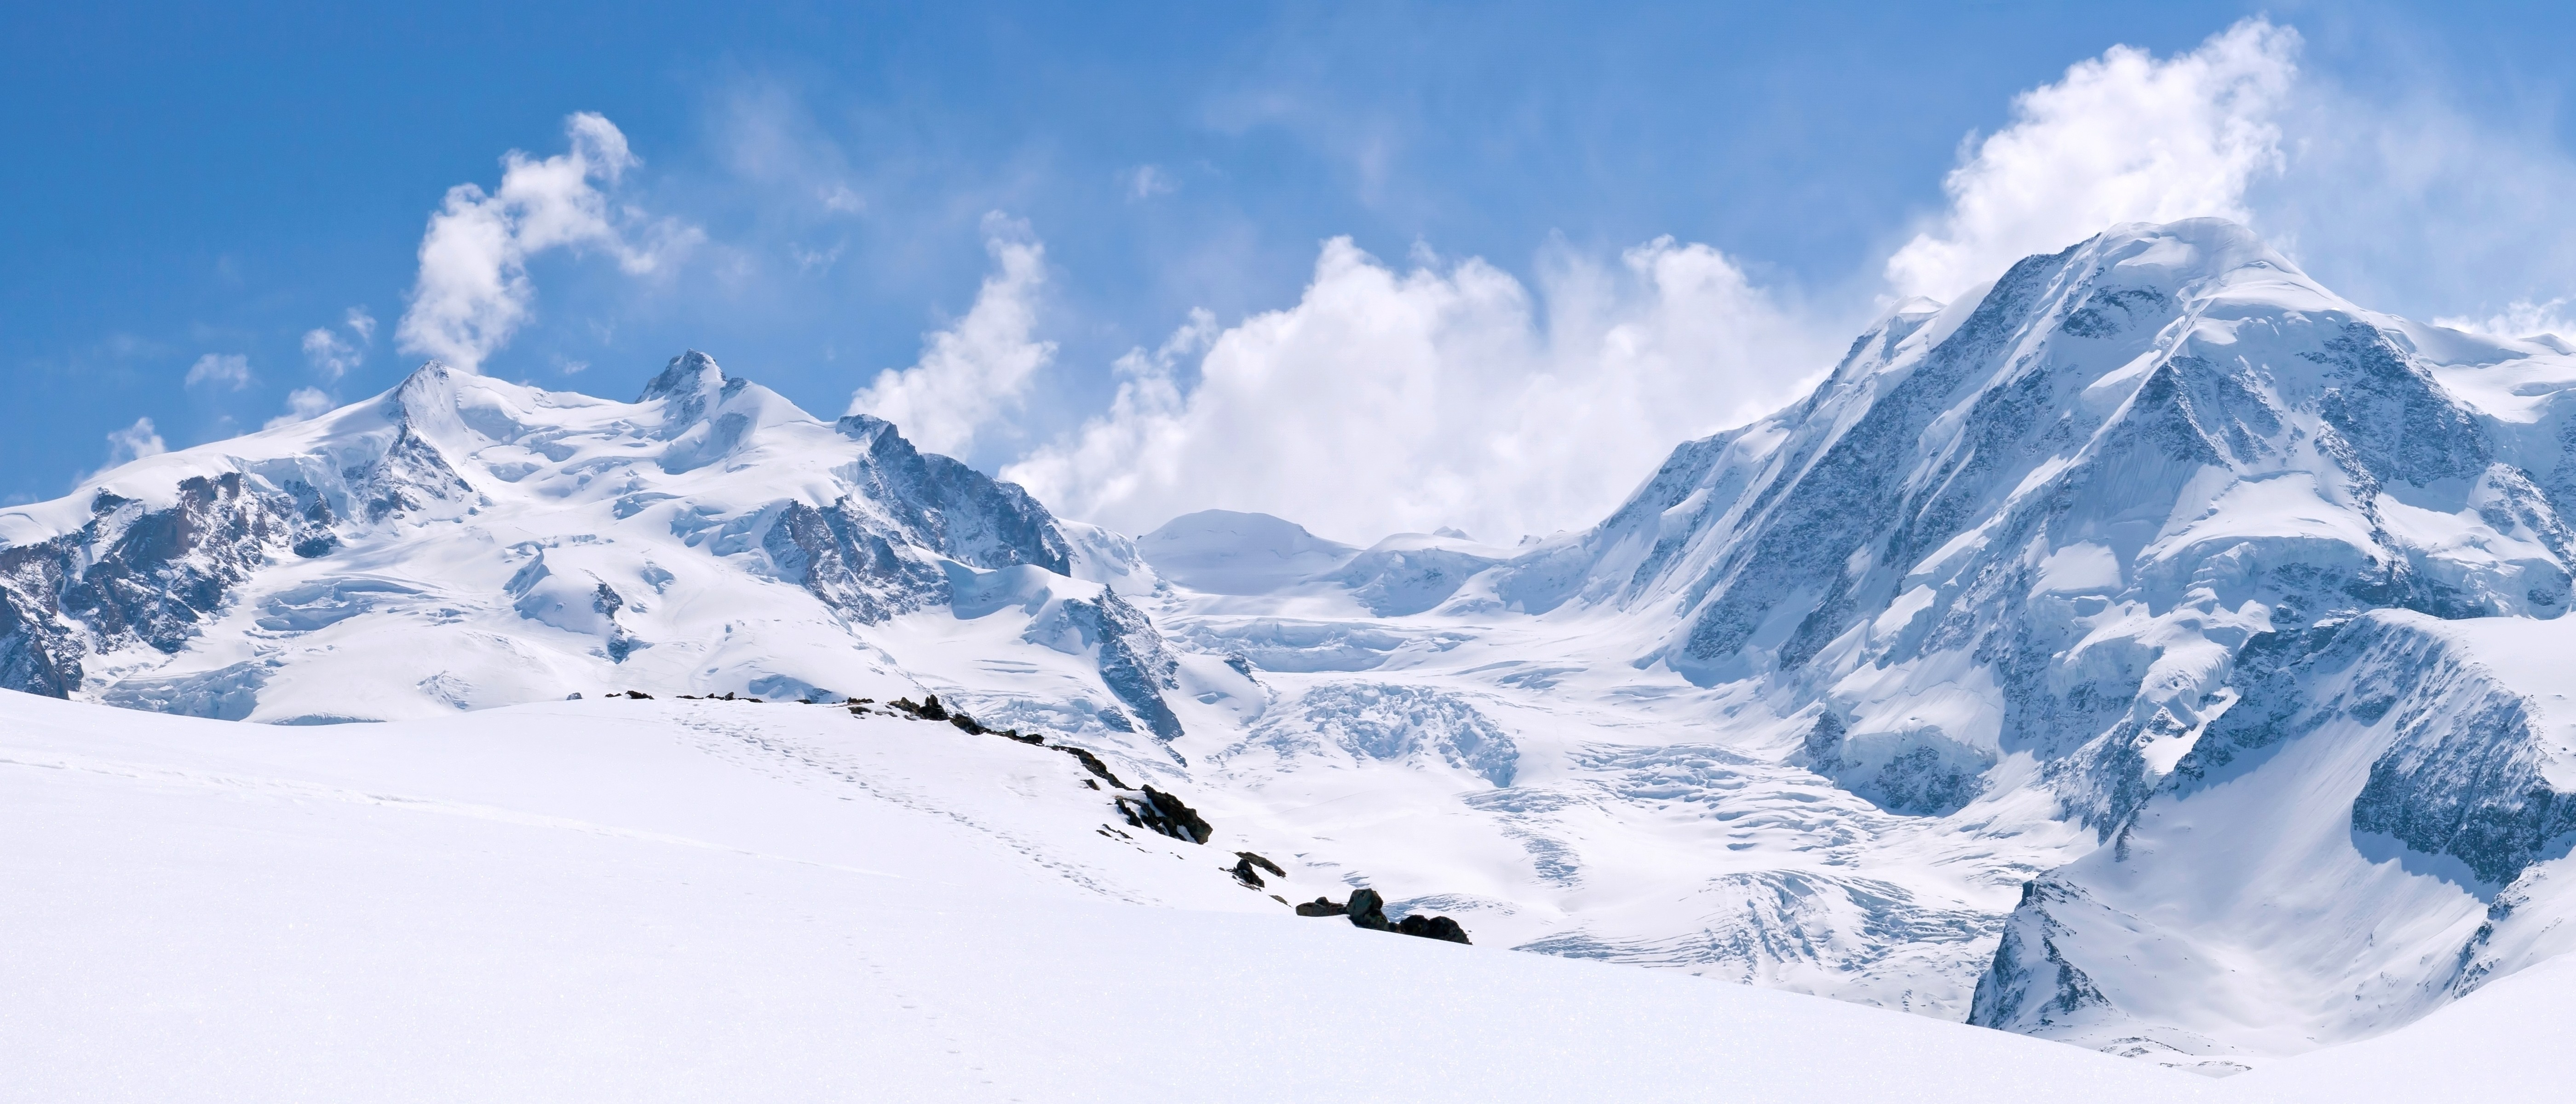 3D Wallpaper, OS: 3D, Mountains, snow, clouds